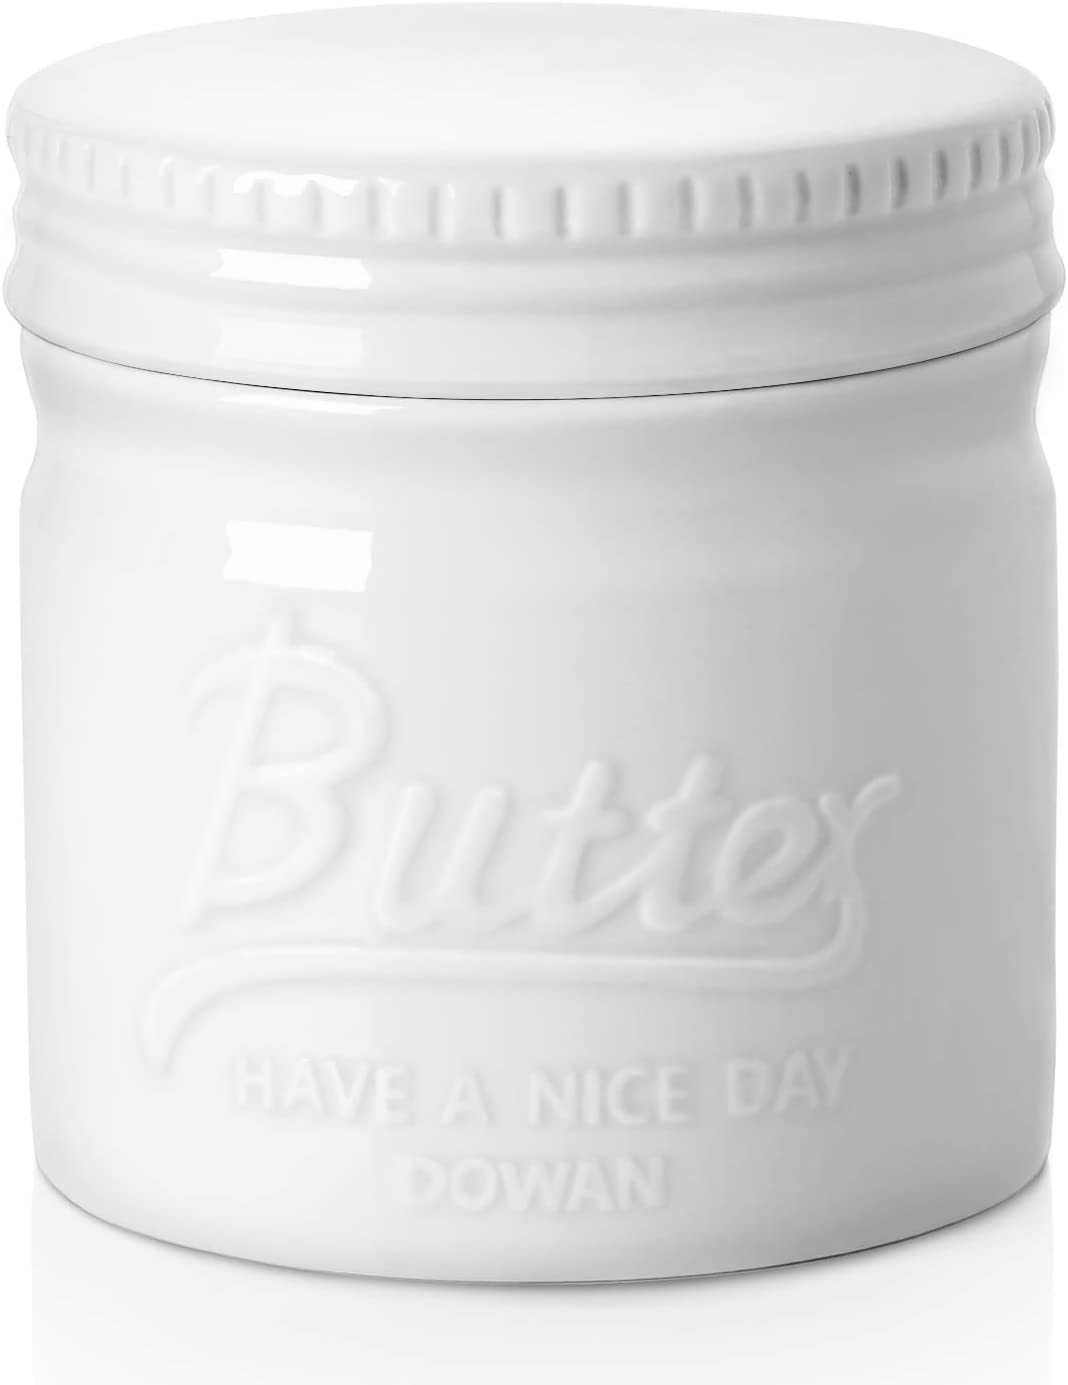 DOWAN Porcelain Butter Keeper Crock, Mason Jar Style Butter Crock, French Butter Dish with Lid, Embossed Butter Container for Soft Butter, White